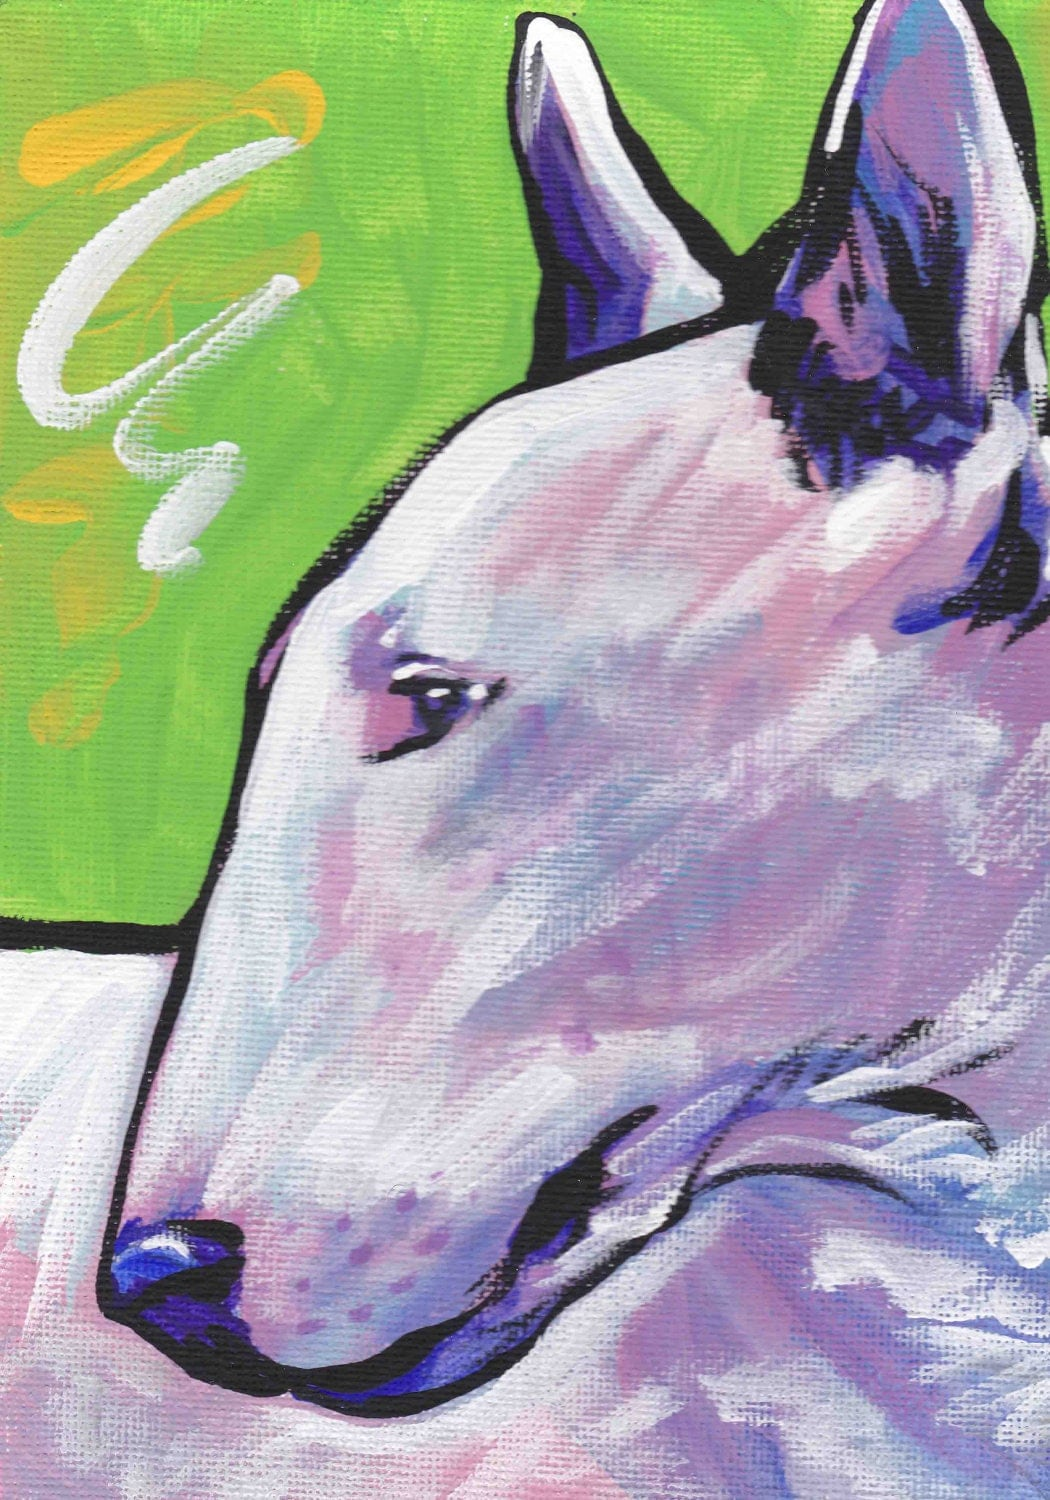 Bull Terrier Art Print Dog Pop Art Bright Colors X - Bull terrier art